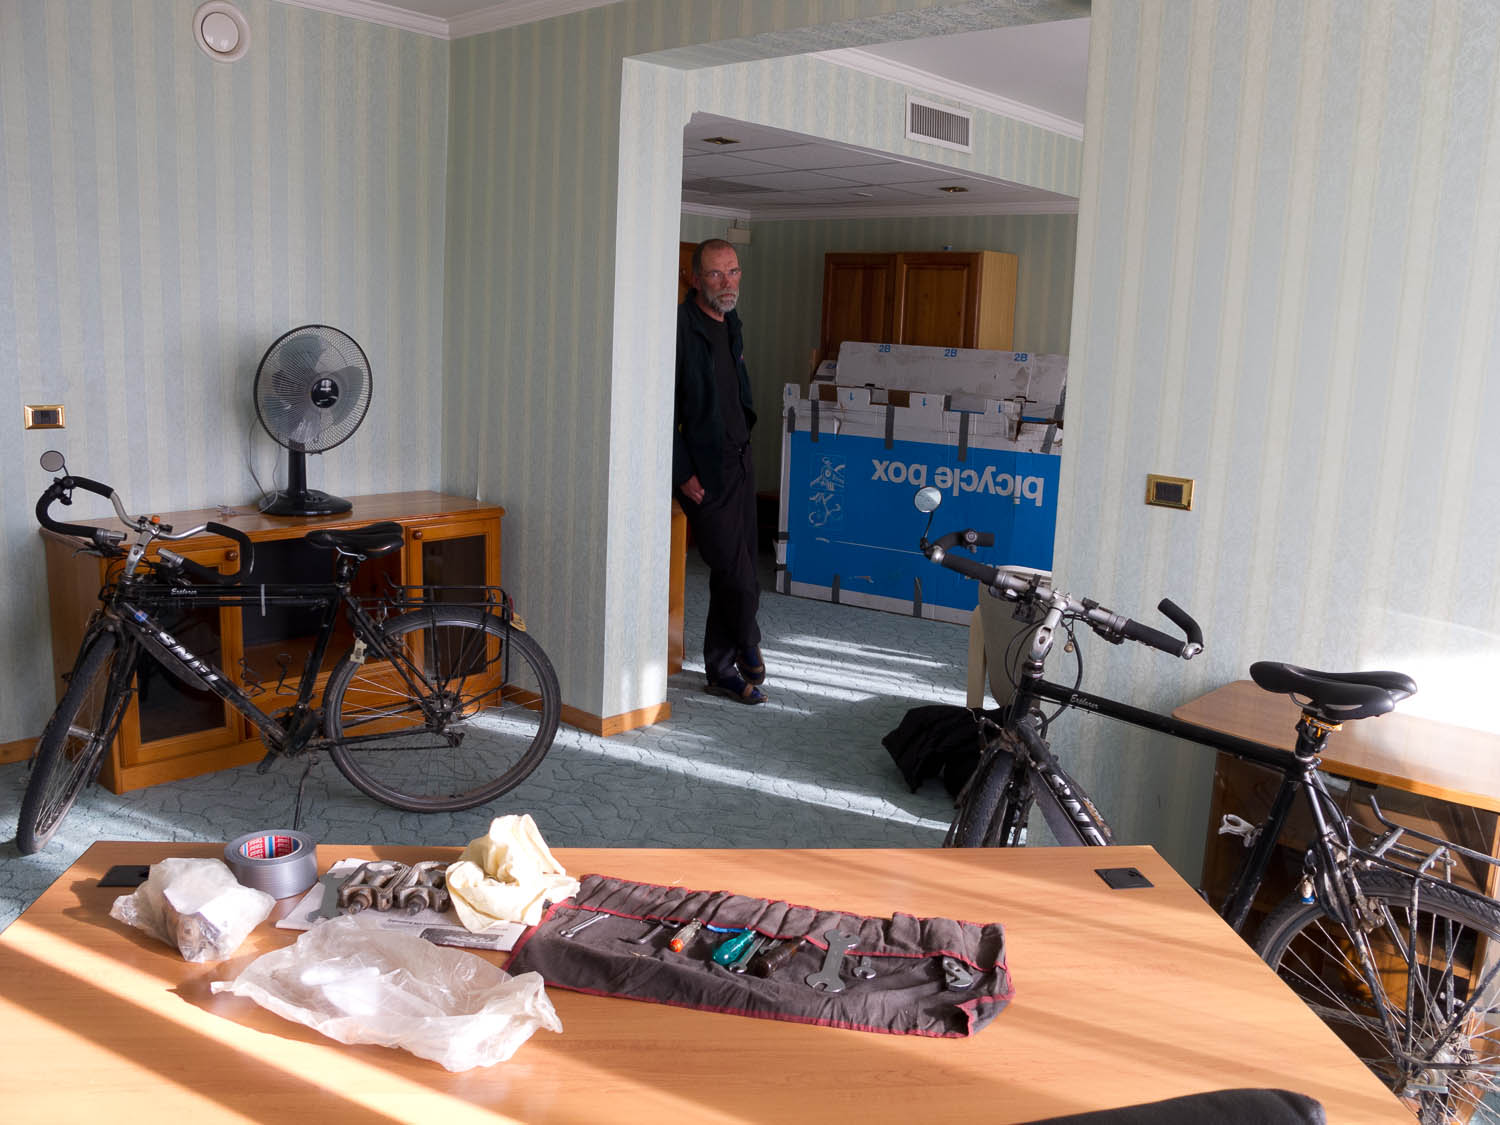 Packing the bikes in hotel